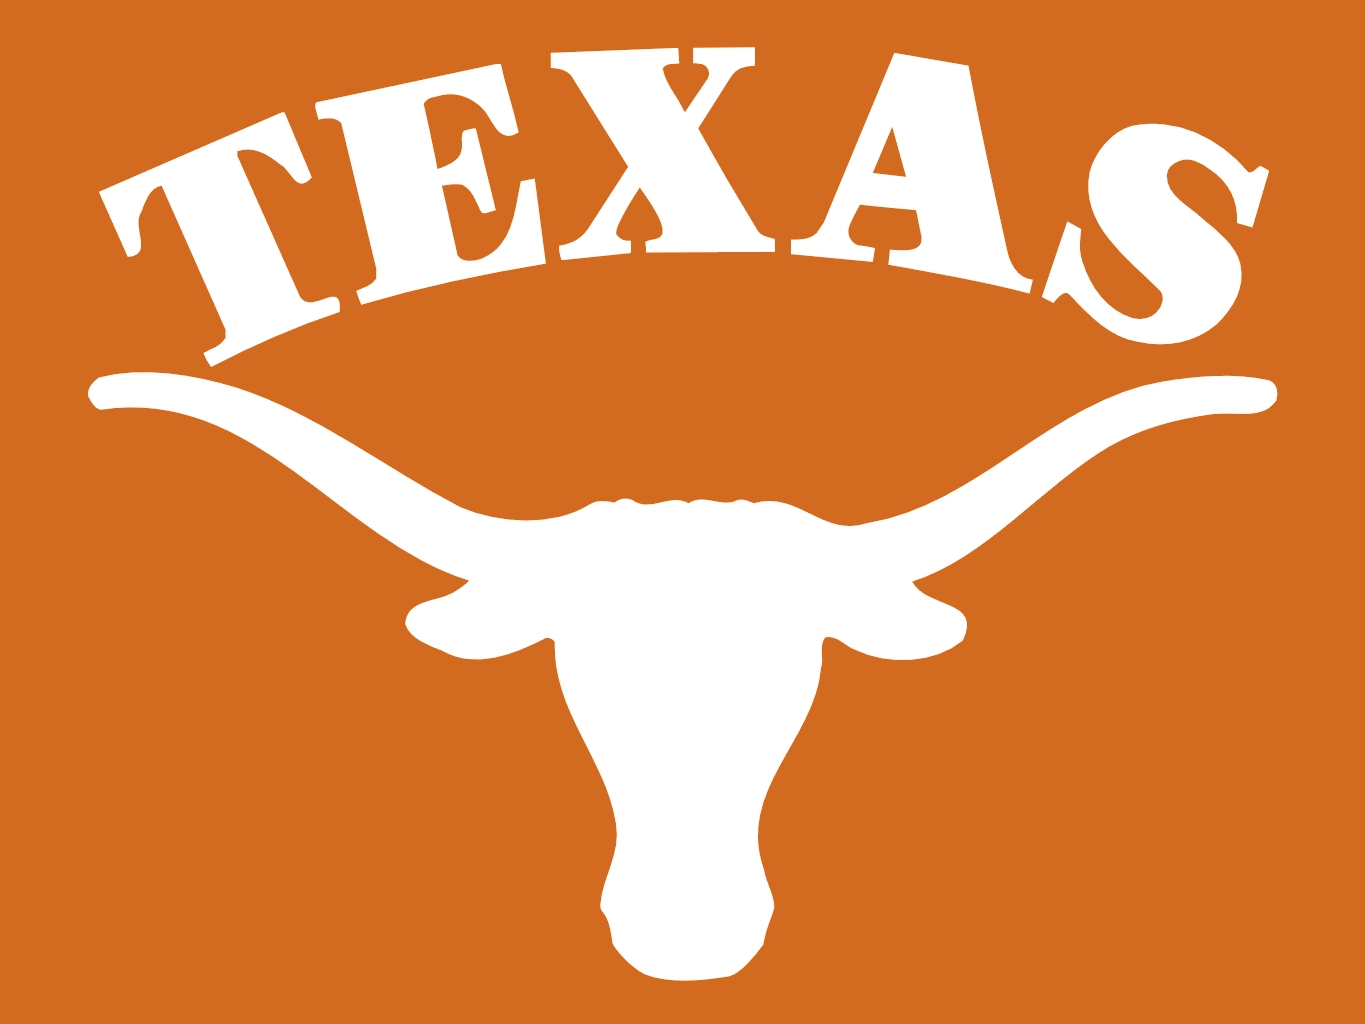 1365x1024 Cool Texas Logos Free 38 For Your Awesome Logos With Texas Logos